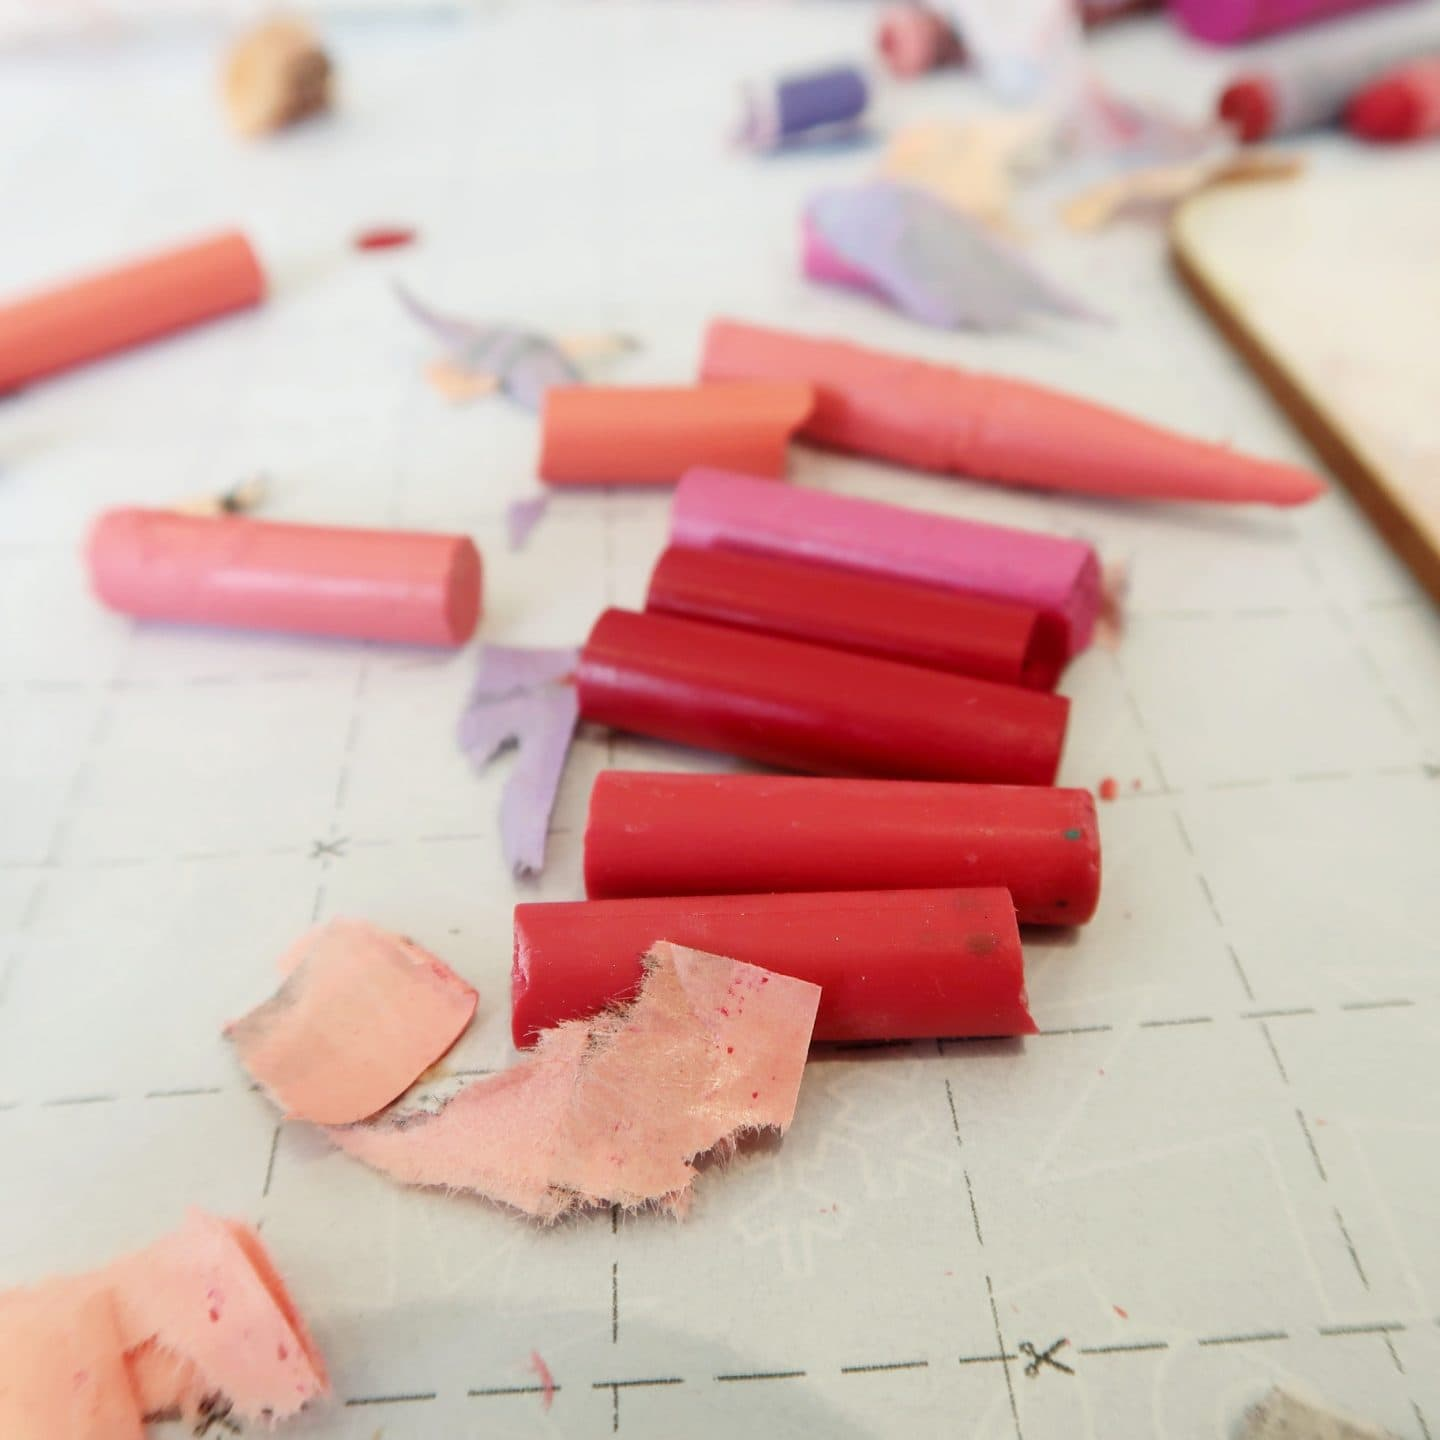 Close up of broken wax colouring crayons in pink and red.